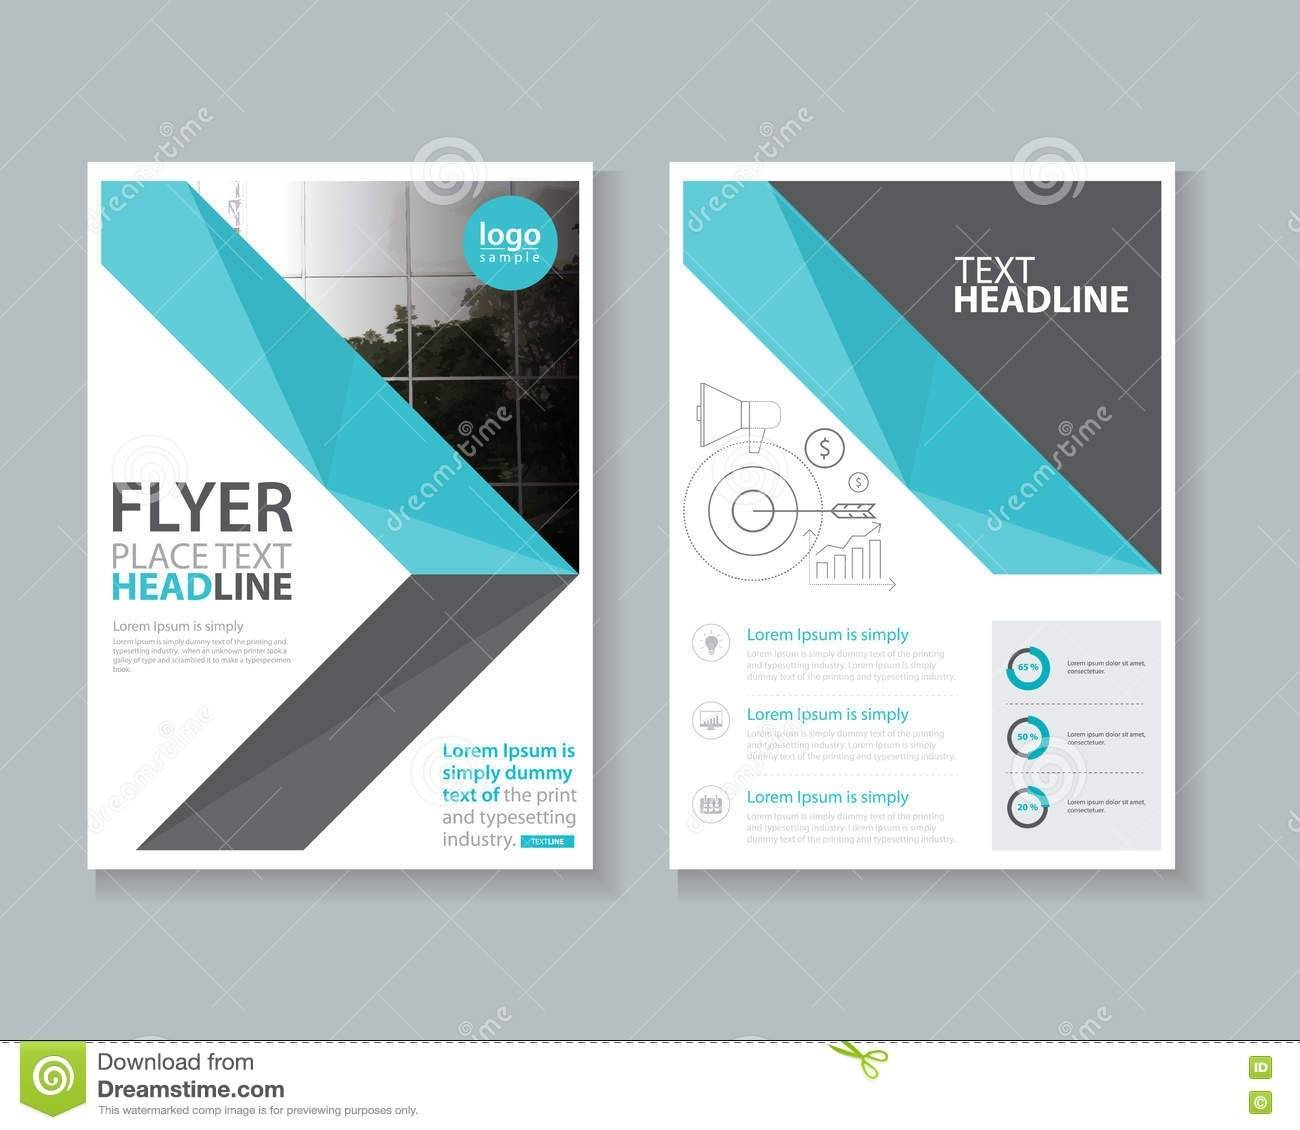 Indesign Report Template Free Download